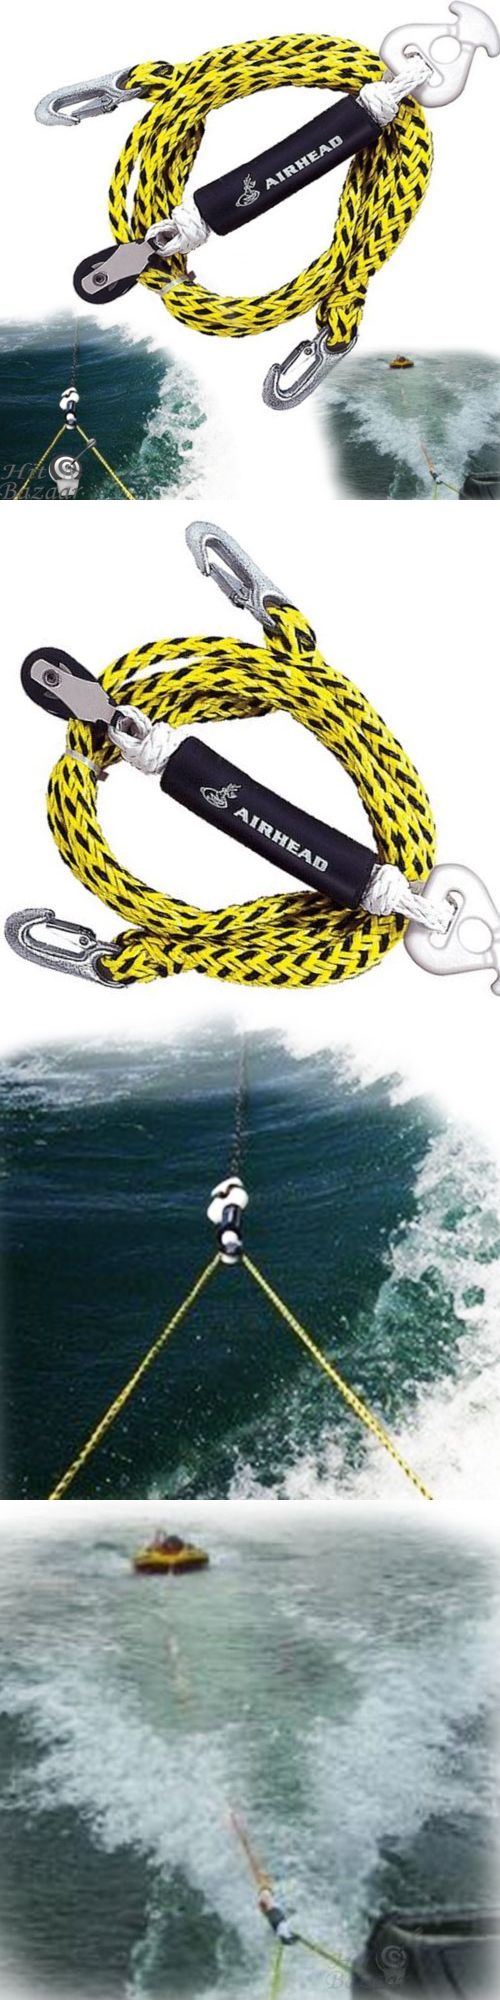 e59c80c1c7071d3db2fa2307f8fa7871 ropes and handles 74048 harness tow boat rope ski water pulley tube